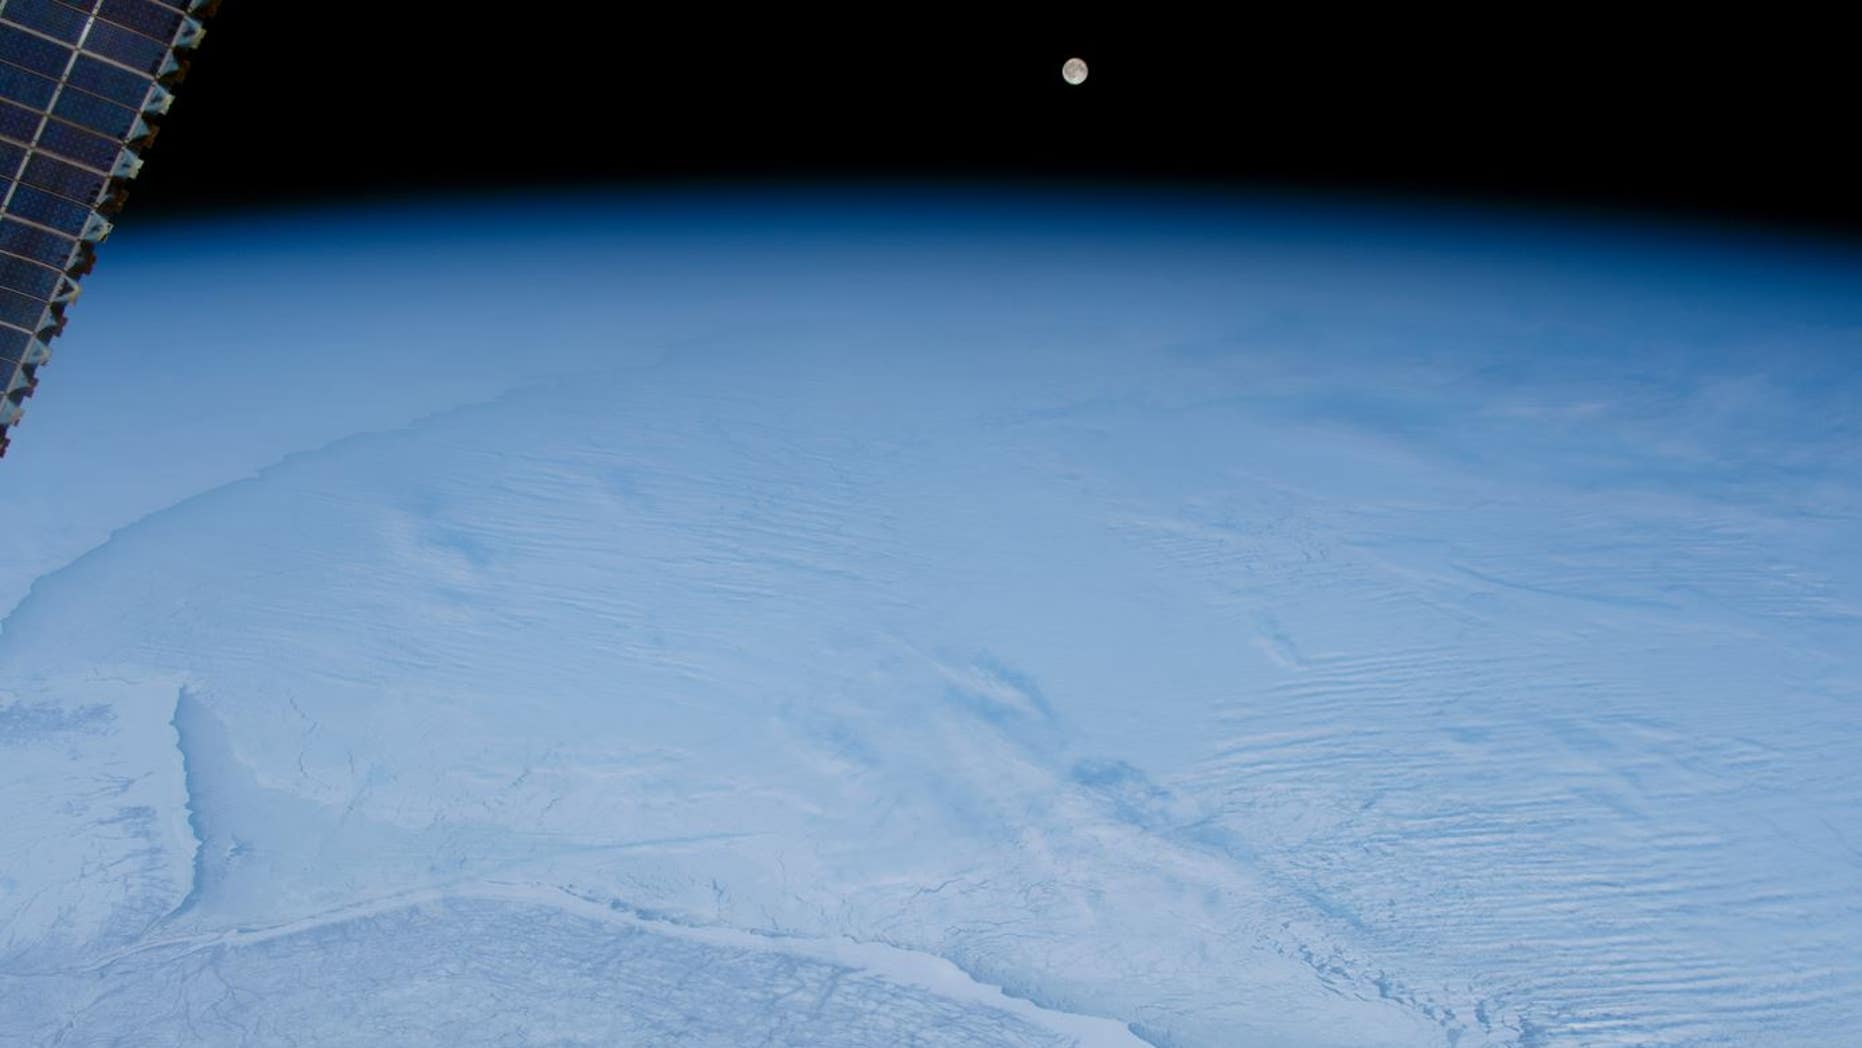 The above image was taken by a NASA astronaut on board the International Space Station.